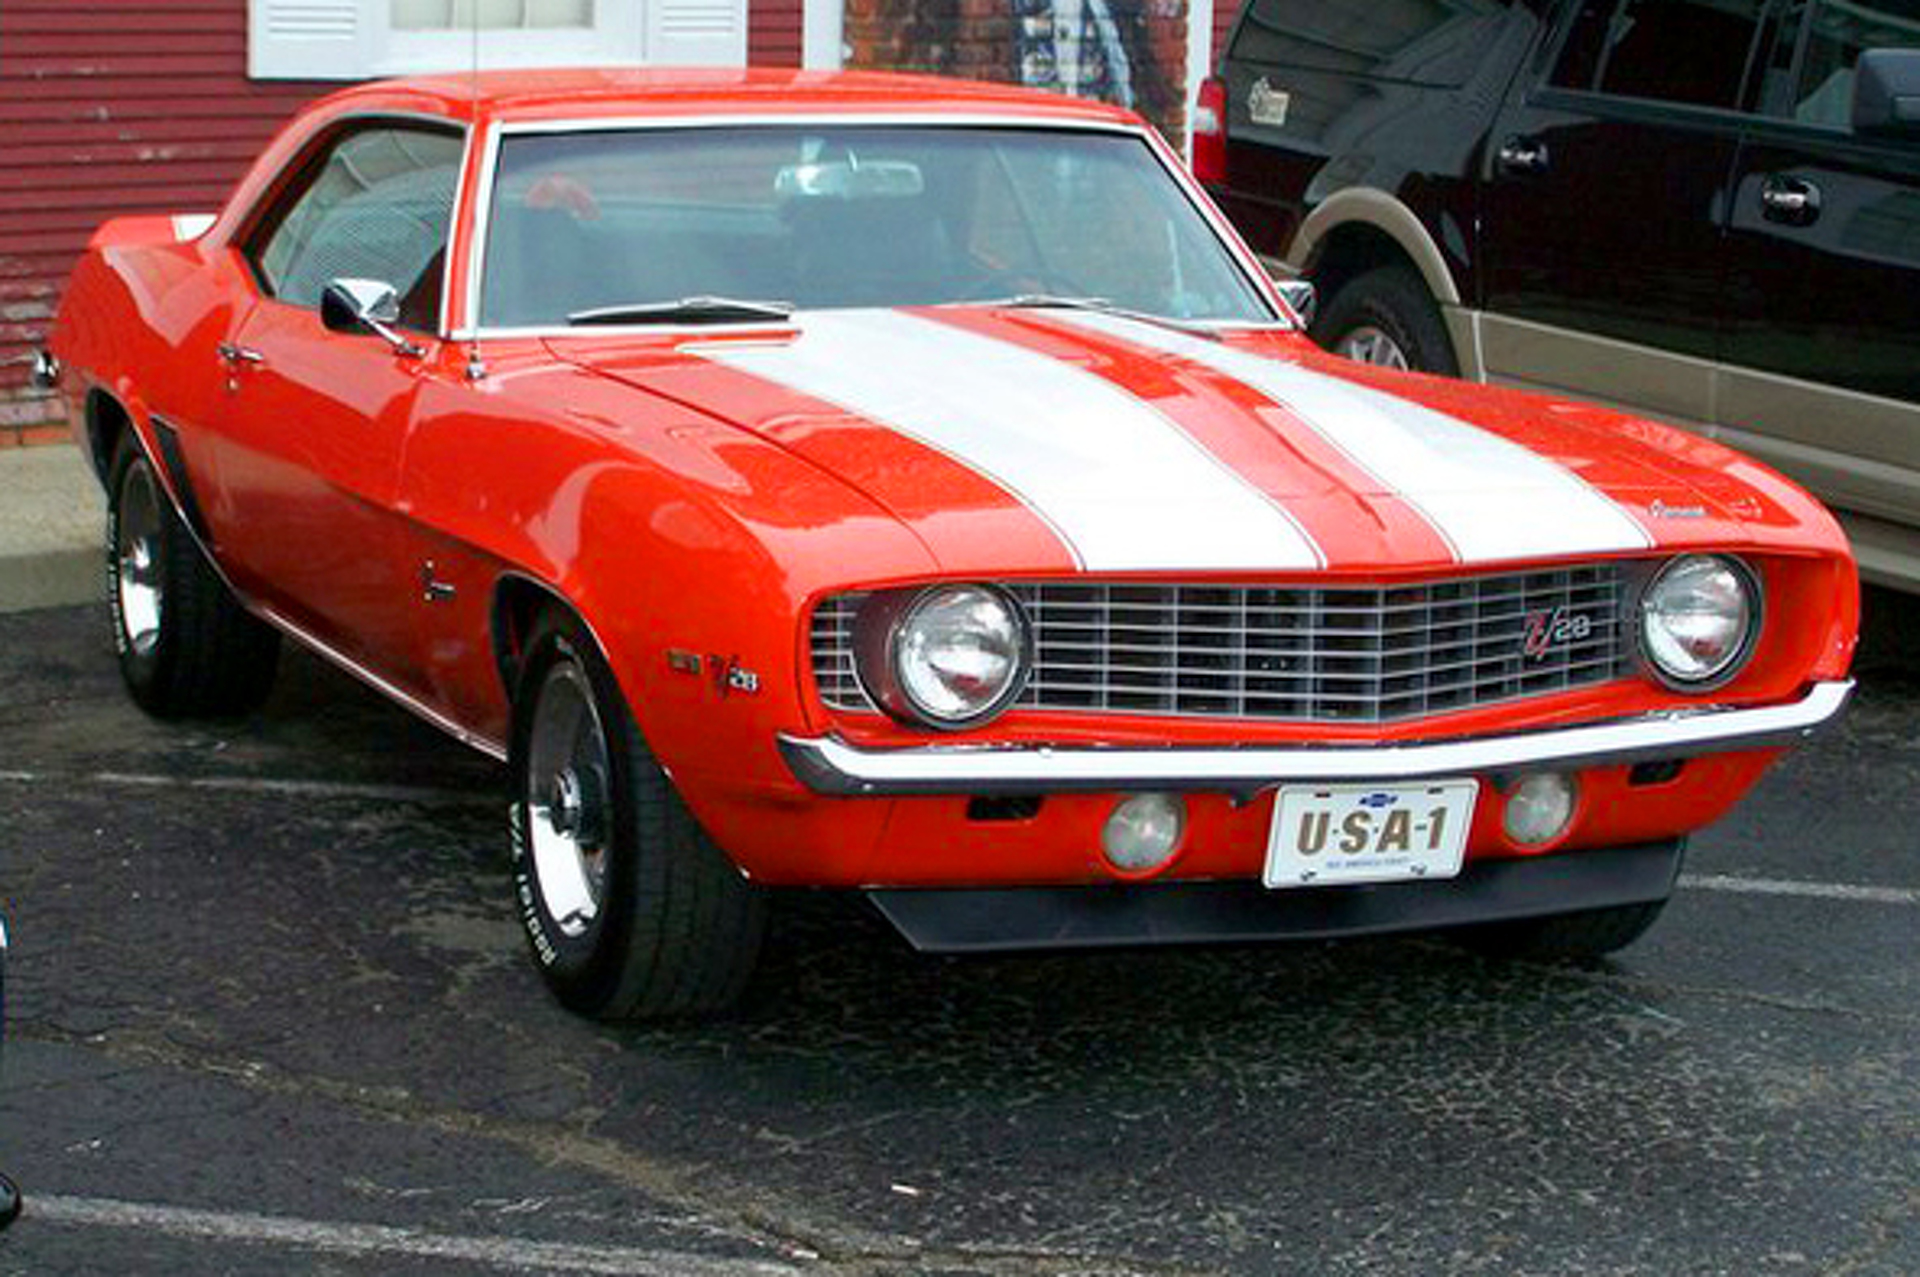 Your Ride: 1969 Chevrolet Camaro Z/28